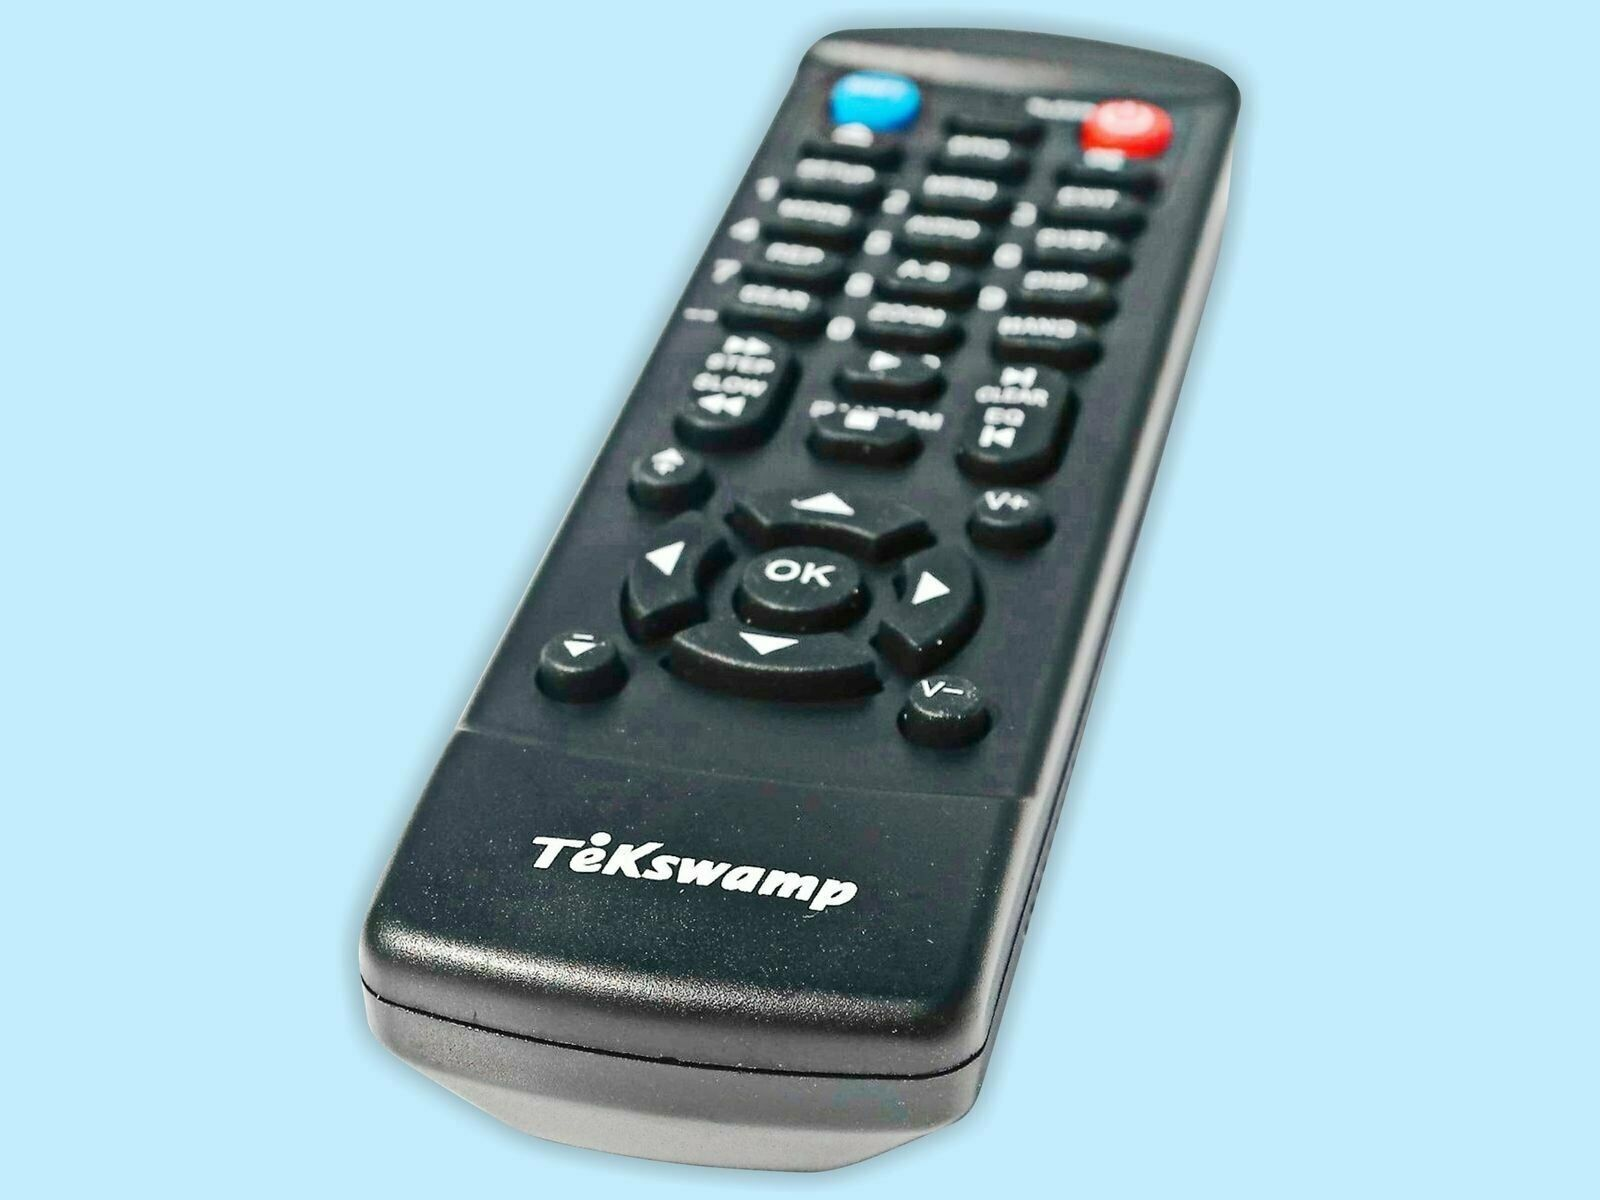 TeKswamp Remote Control for Toshiba RD-XS52